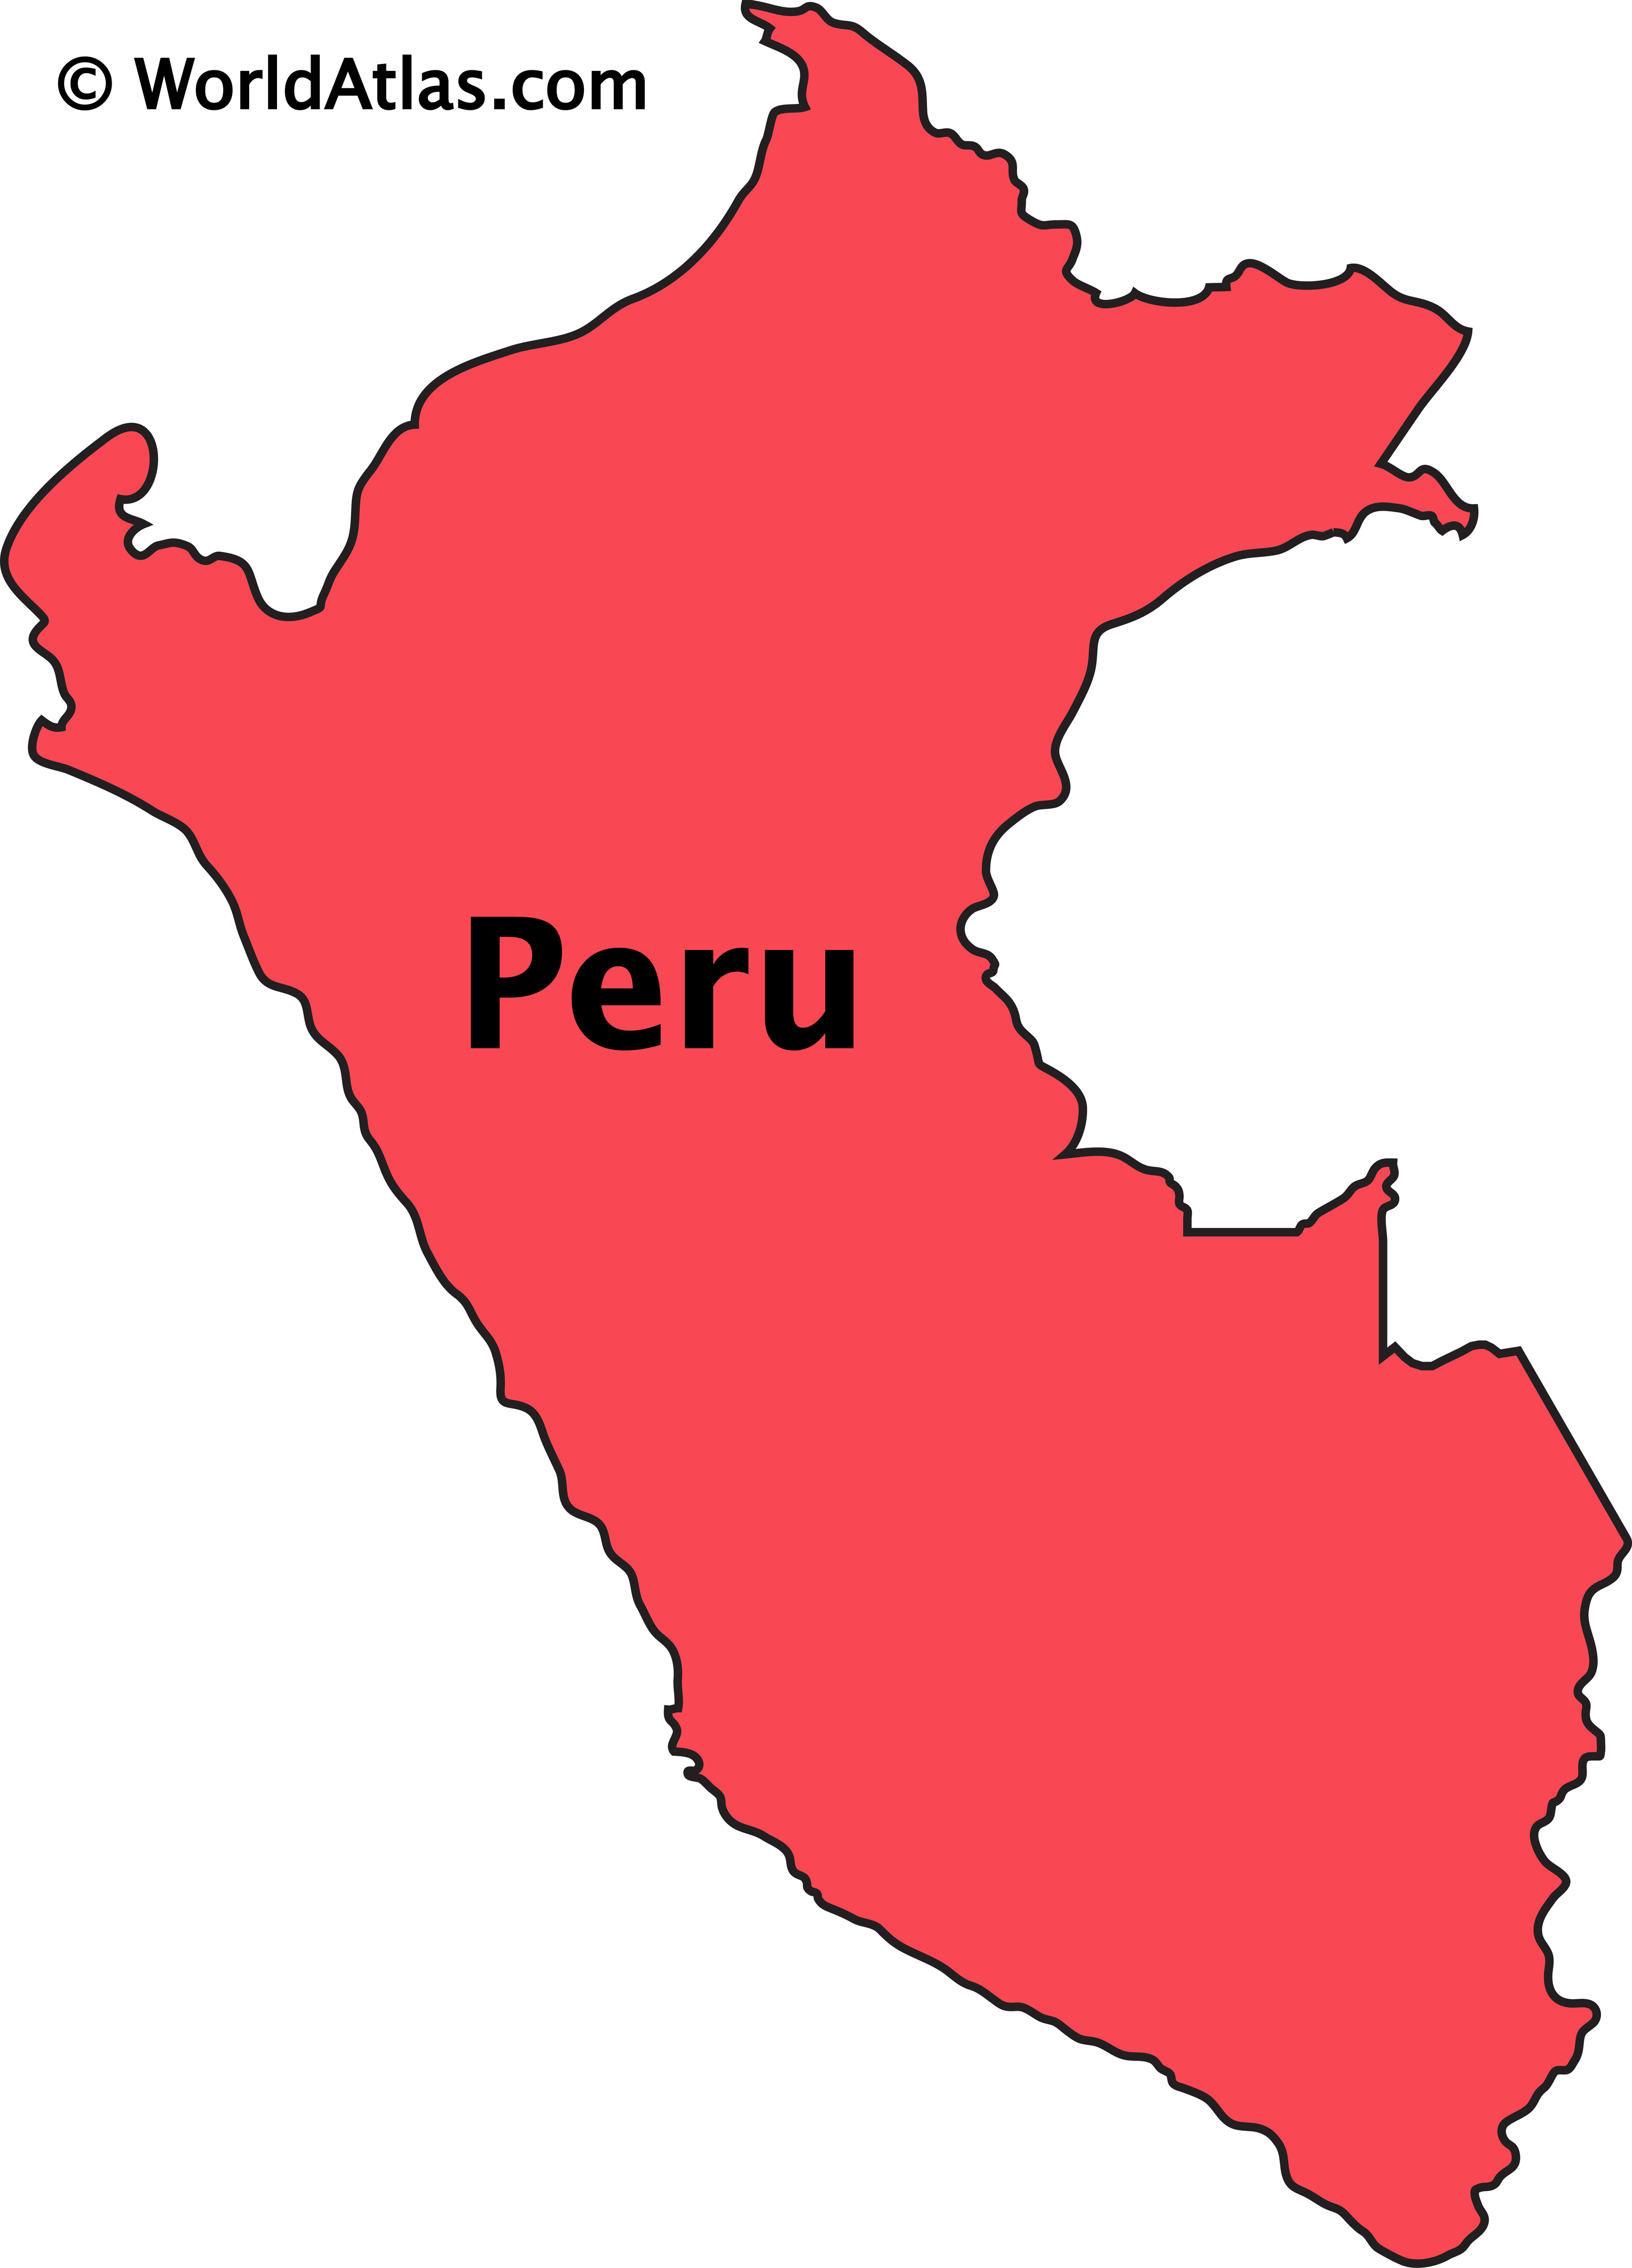 Outline Map of Peru